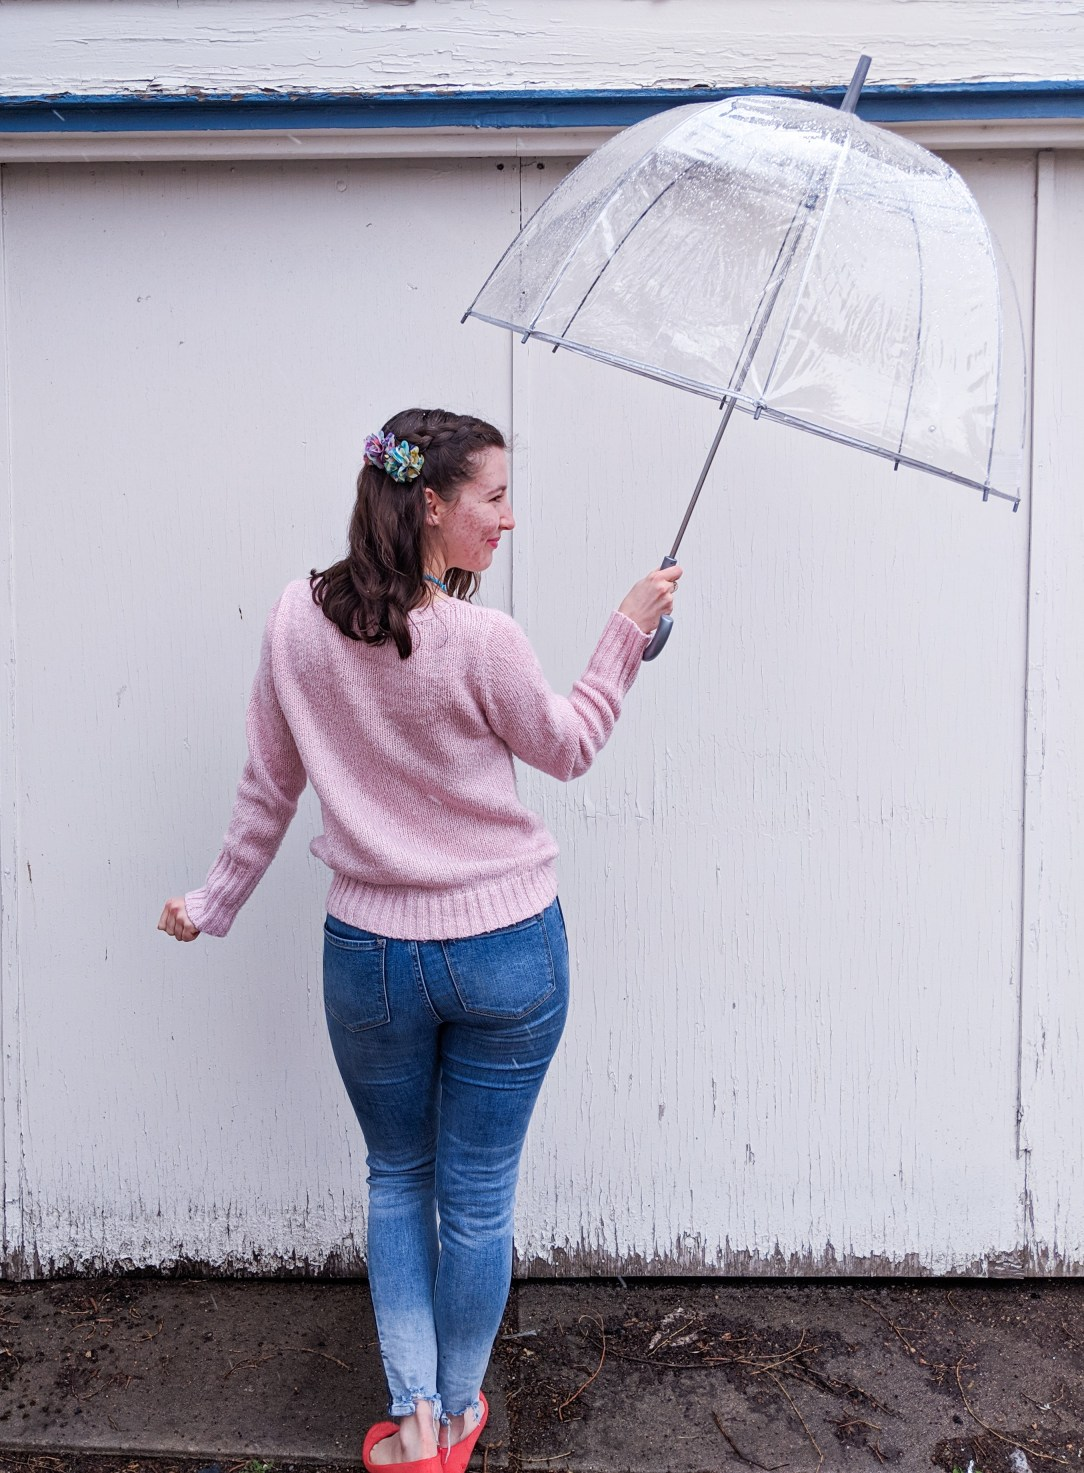 rainy day outfit, poetry, Haiku, skinny jeans, pink sweater